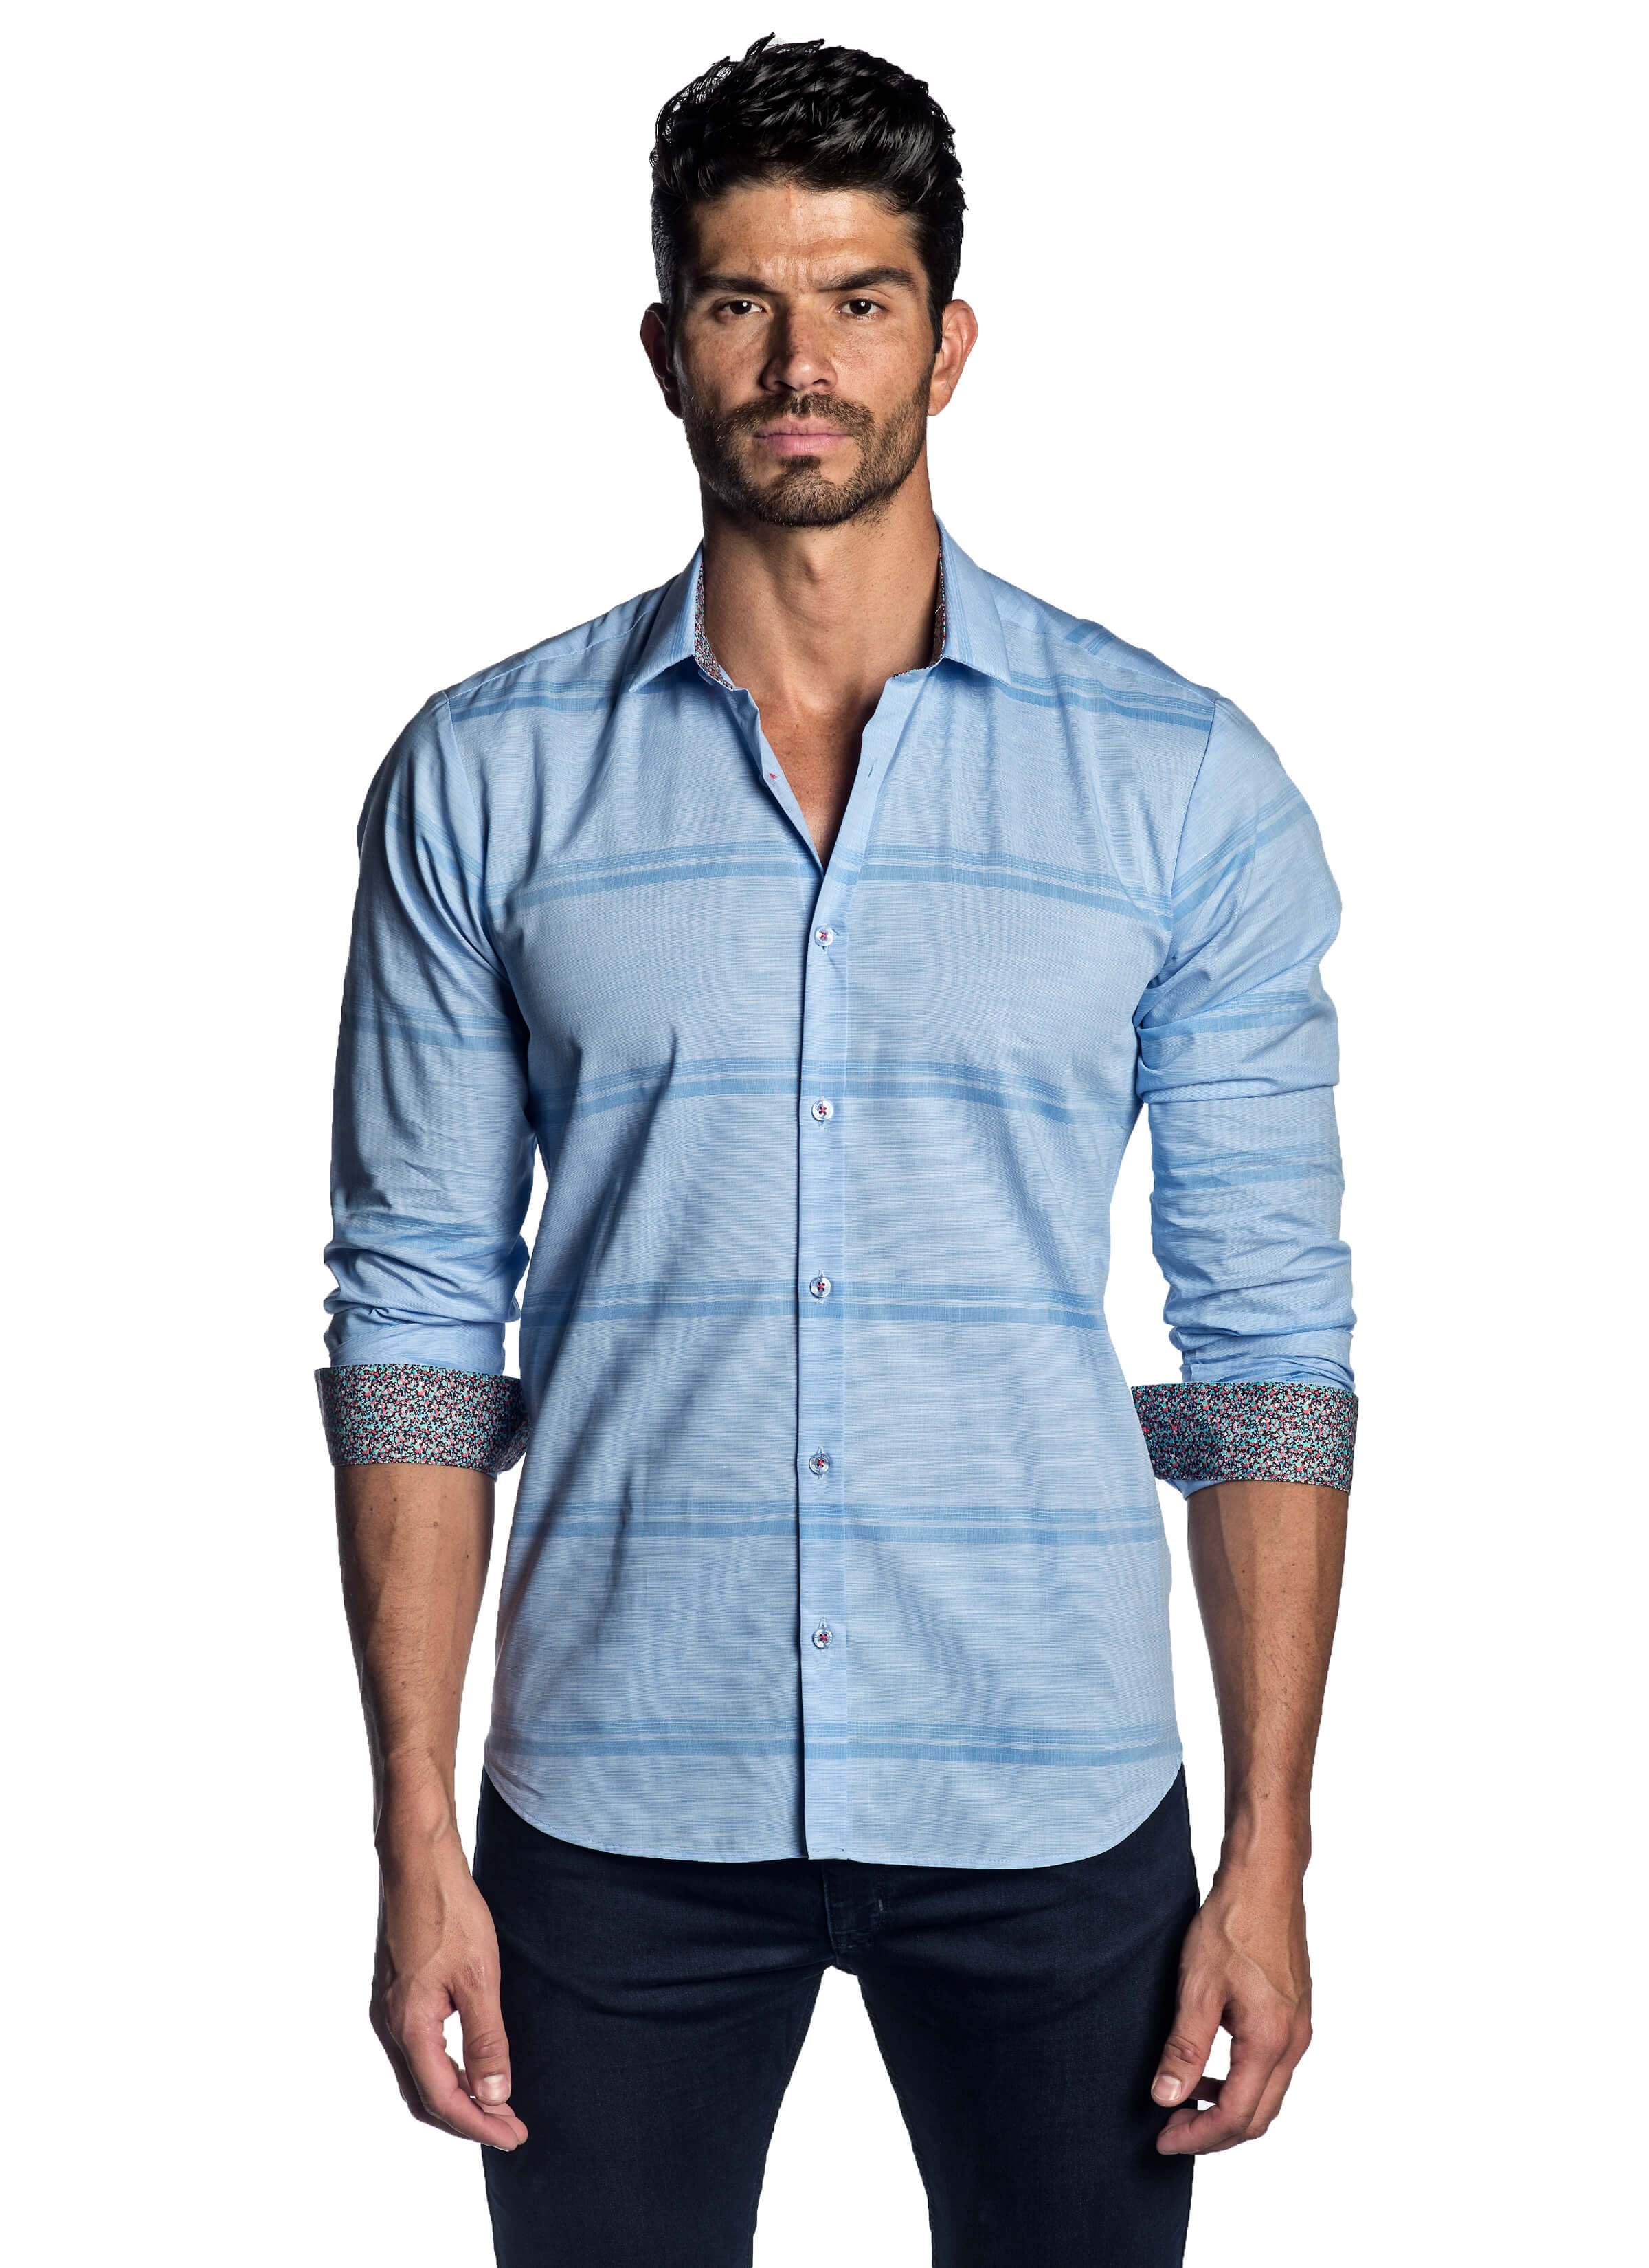 Men's Light Blue Striped Solid Shirt with Microprint Trimming - front AH-T-2001